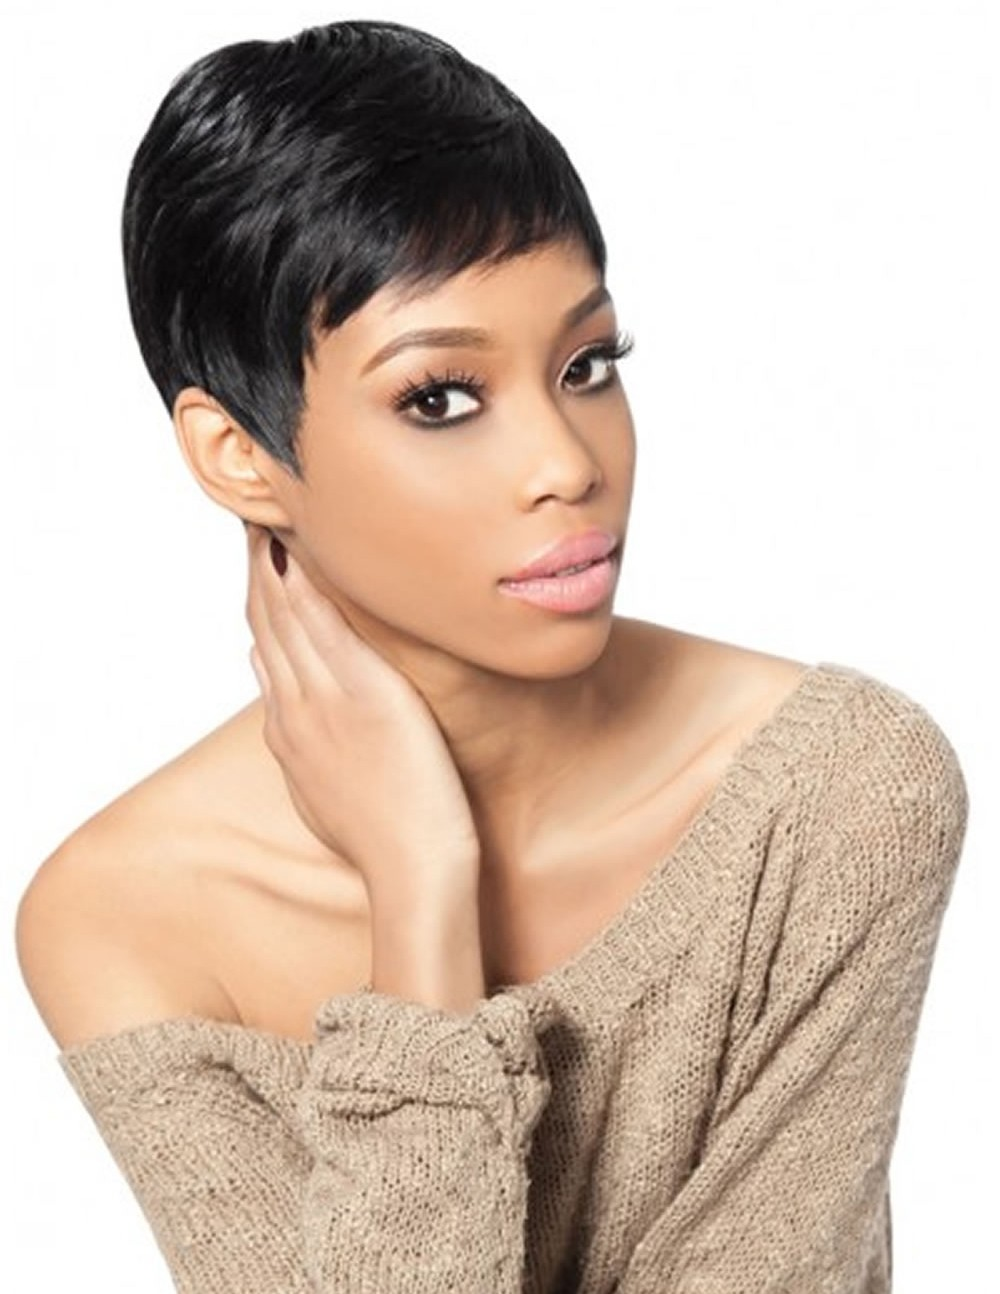 7 Gorgeous Styles For Short wigs for black Women